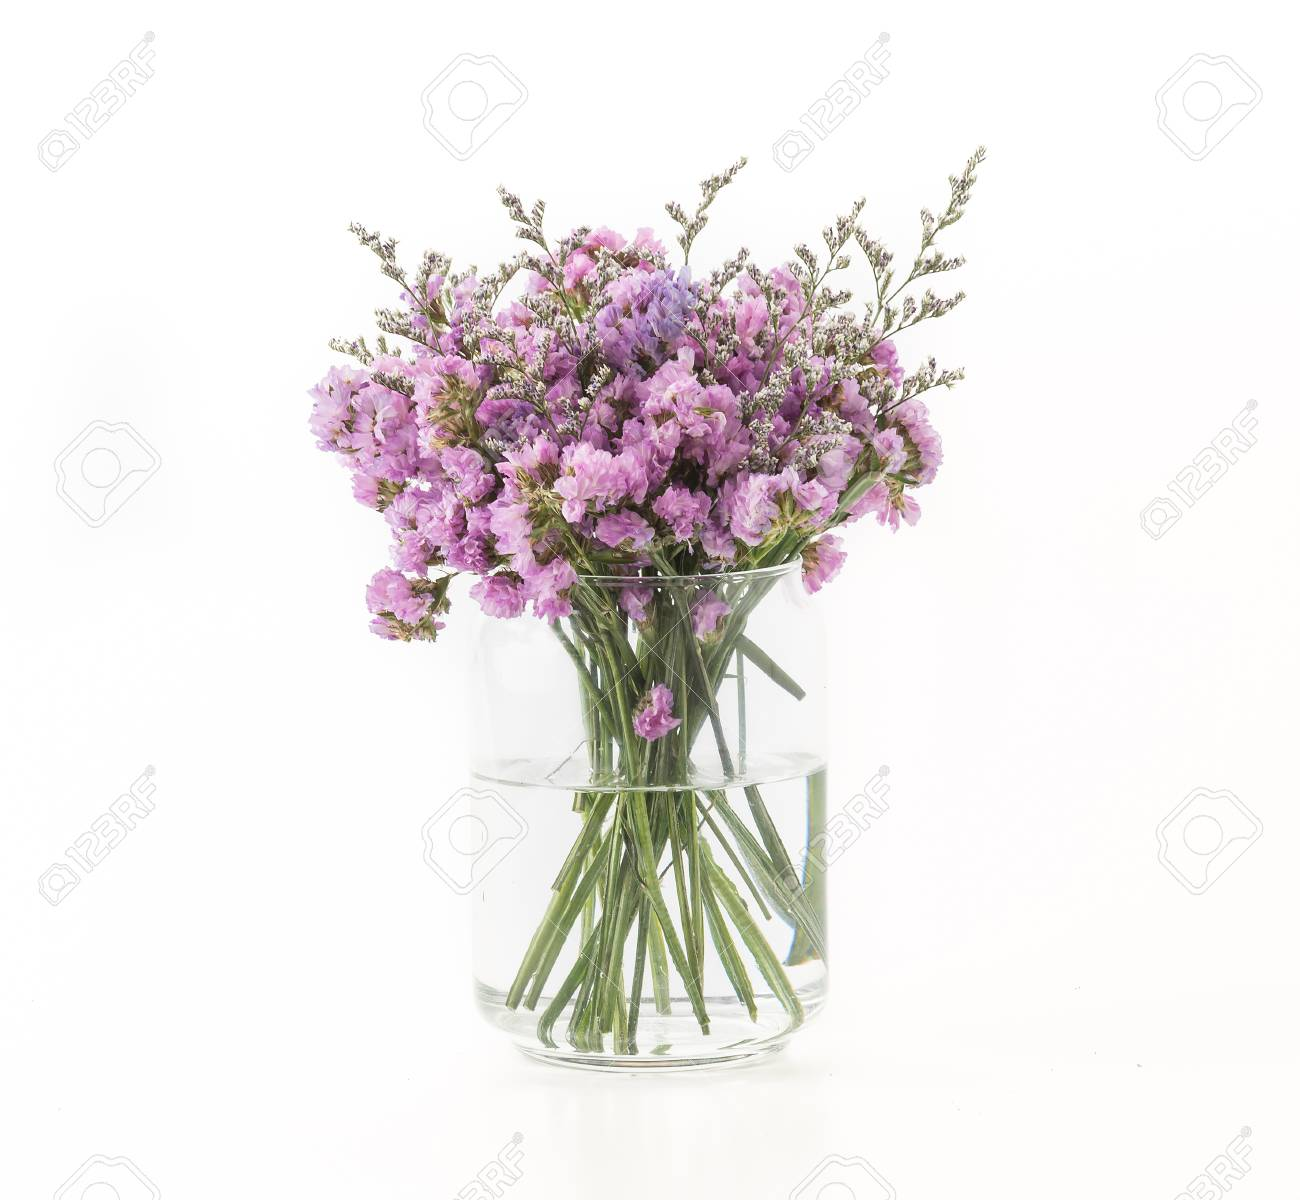 Statice flower bouquet on white background stock photo picture and statice flower bouquet on white background stock photo 44355698 mightylinksfo